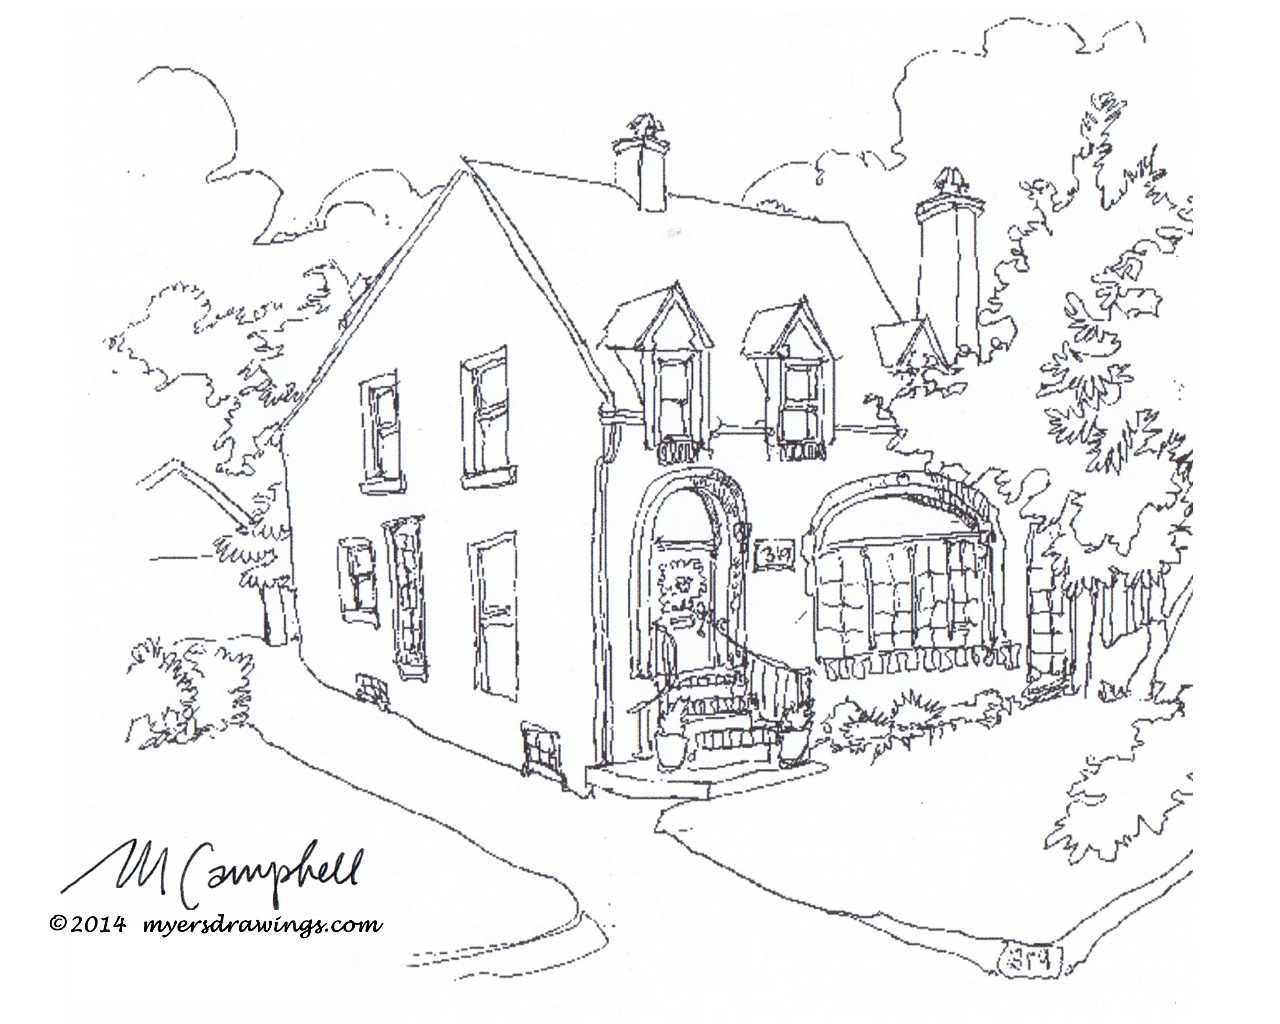 Myers Campbell artist, house sketches